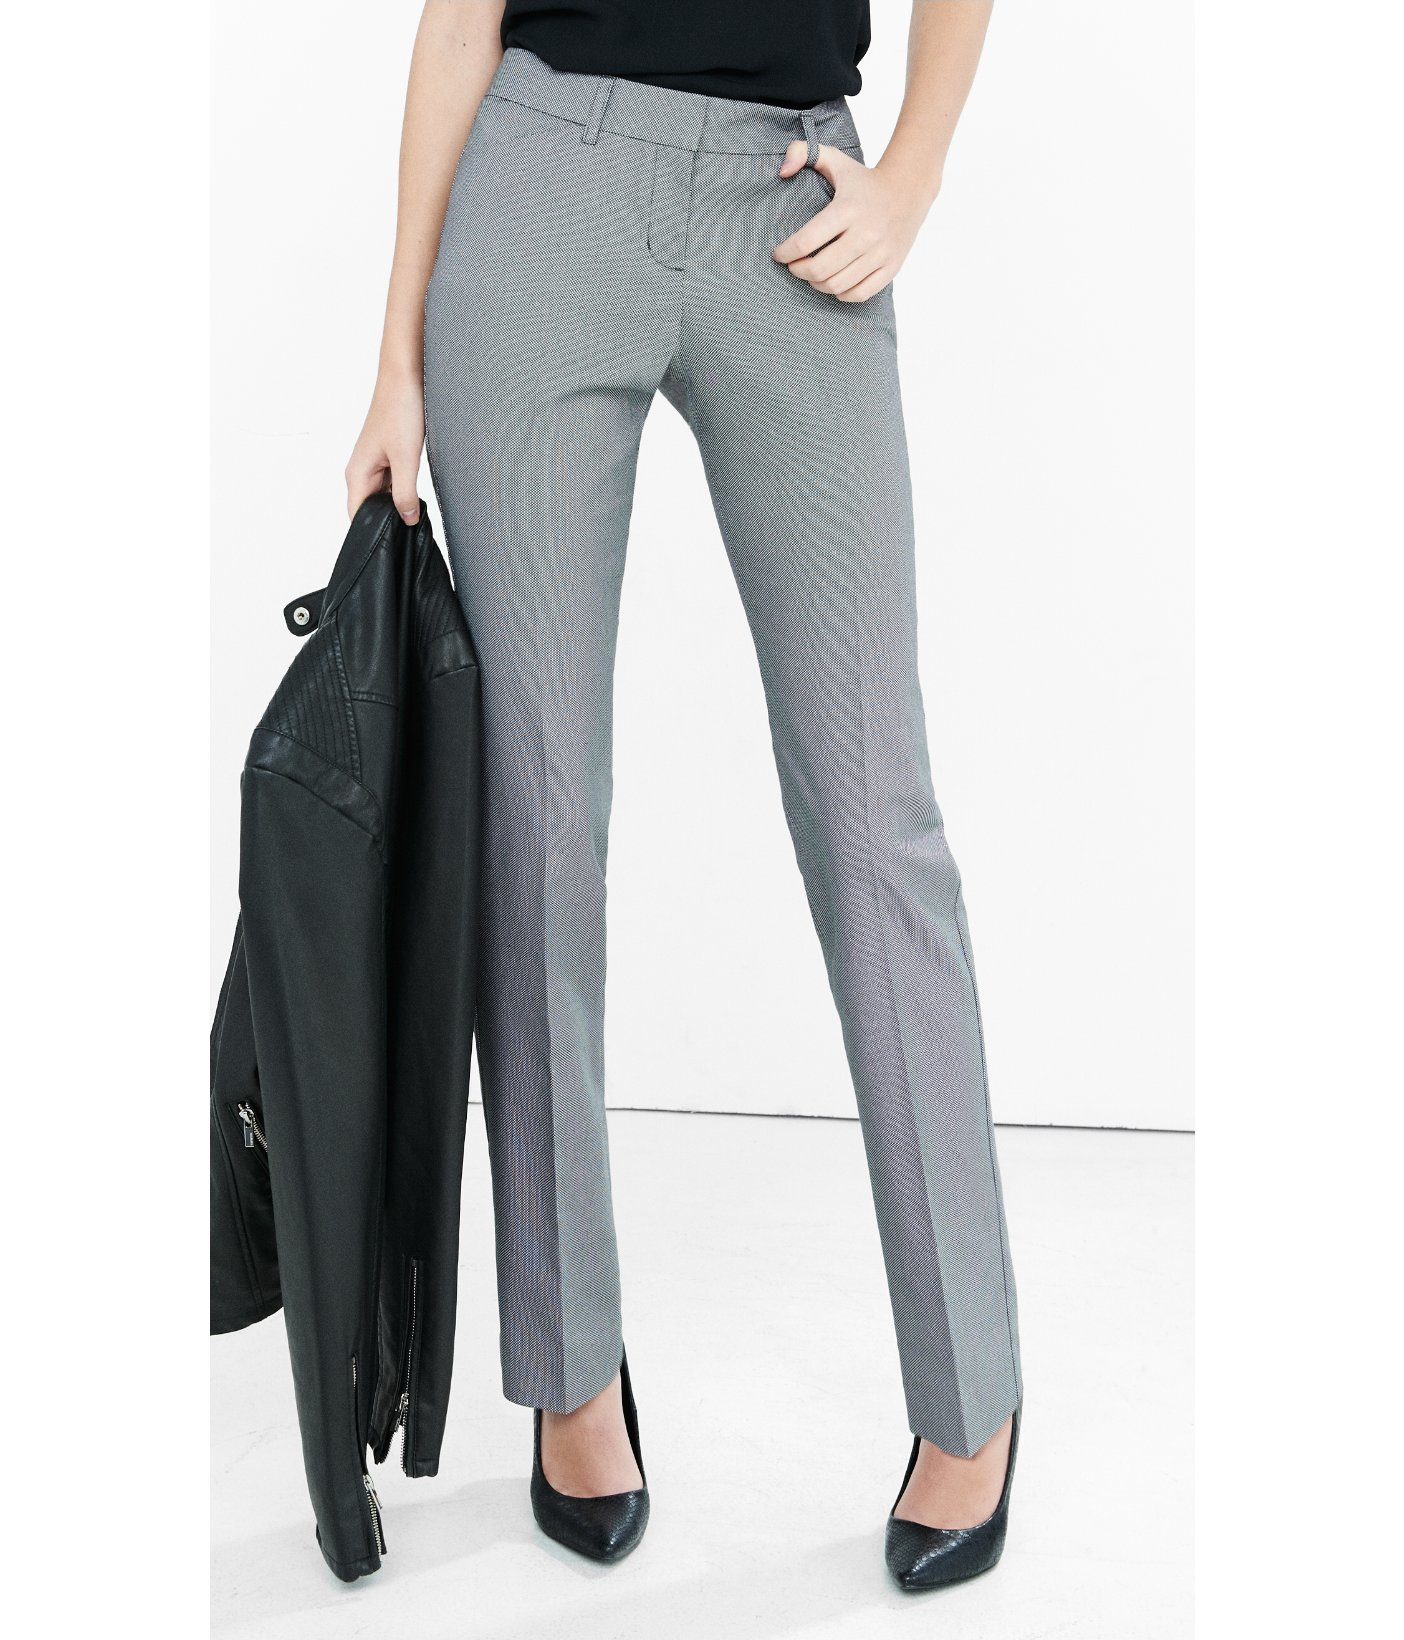 993bb72d7ce86 Slim Fit Dress Pants Express – DACC